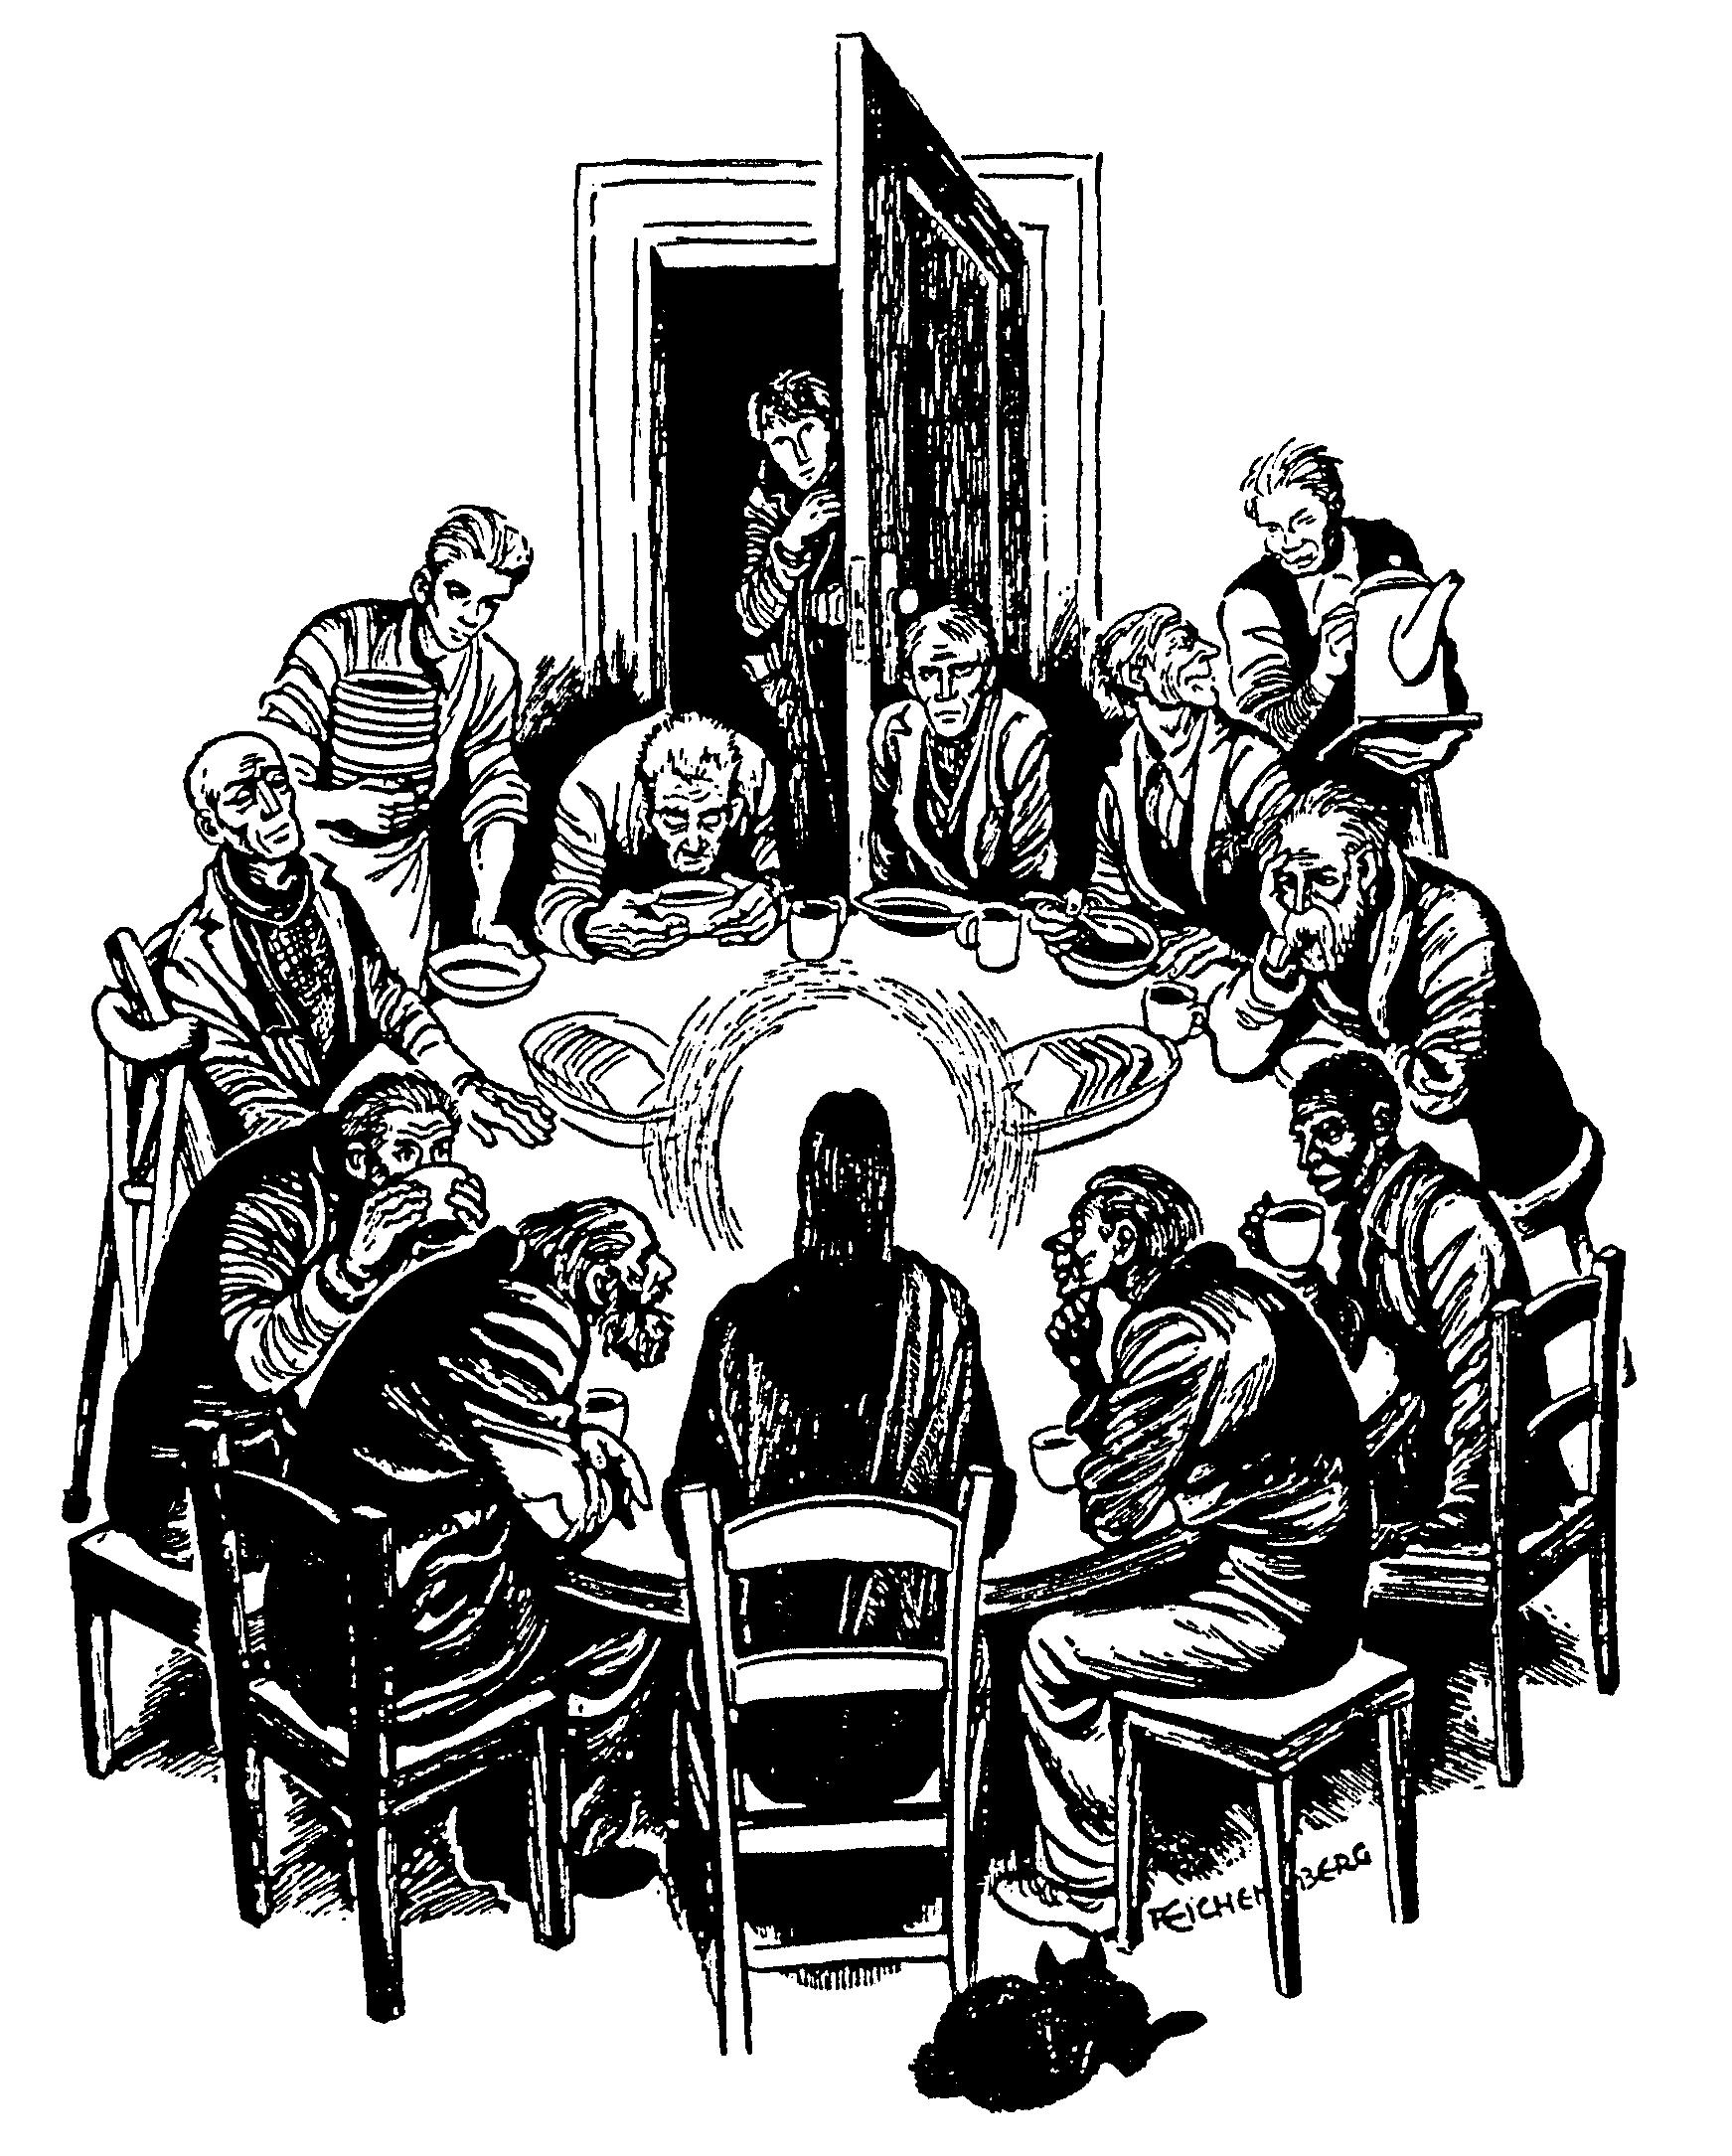 The Last Supper by Fritz Eichenberg